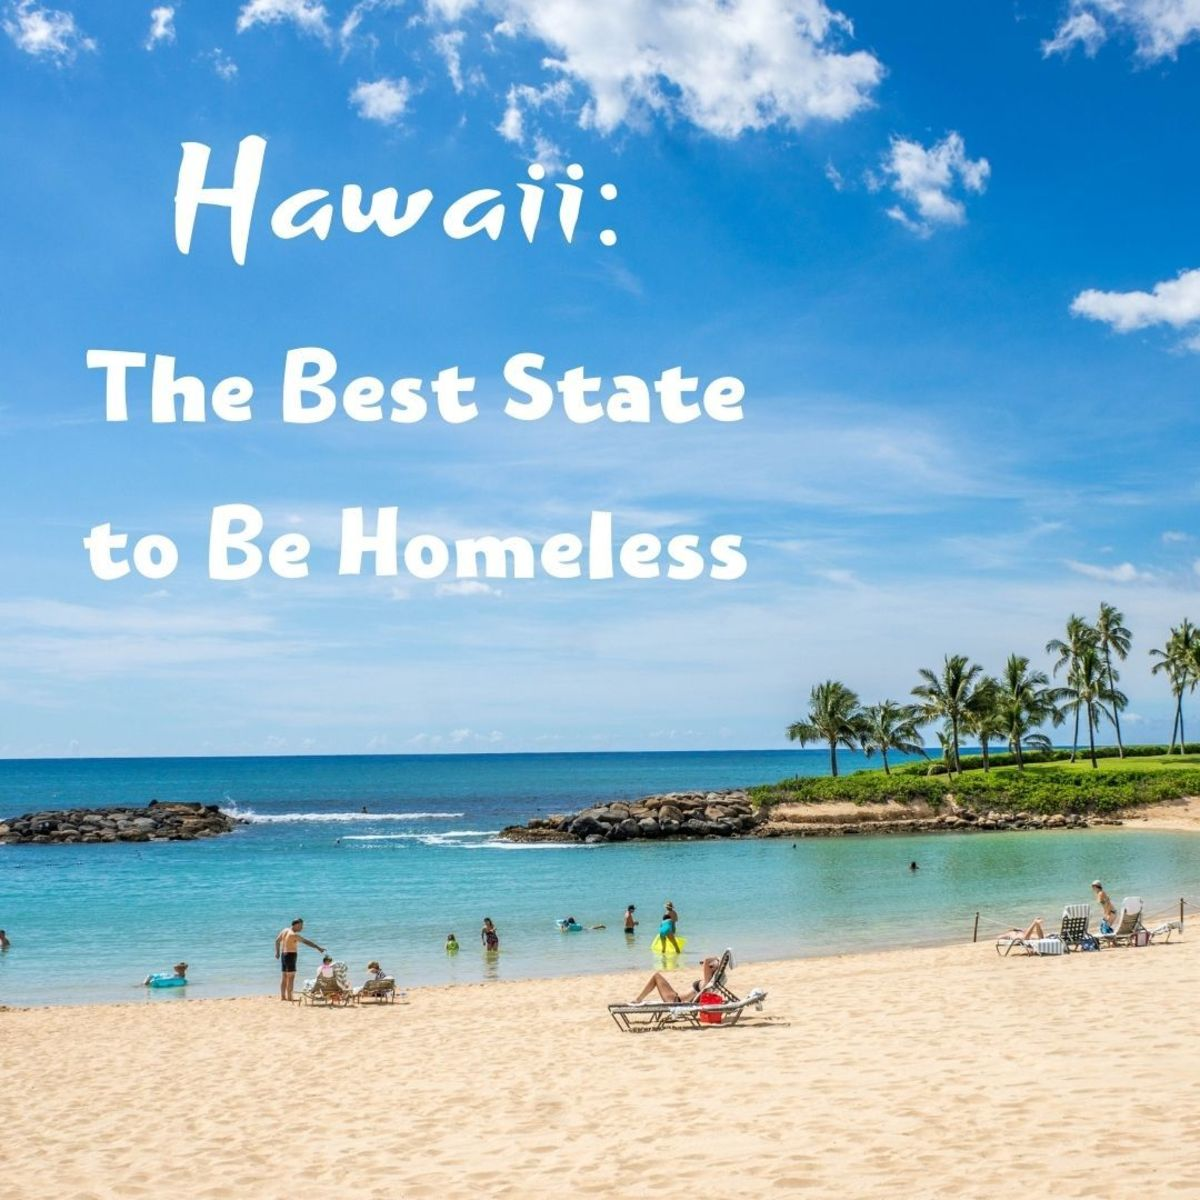 Learn why Hawaii is the best state for homelessness